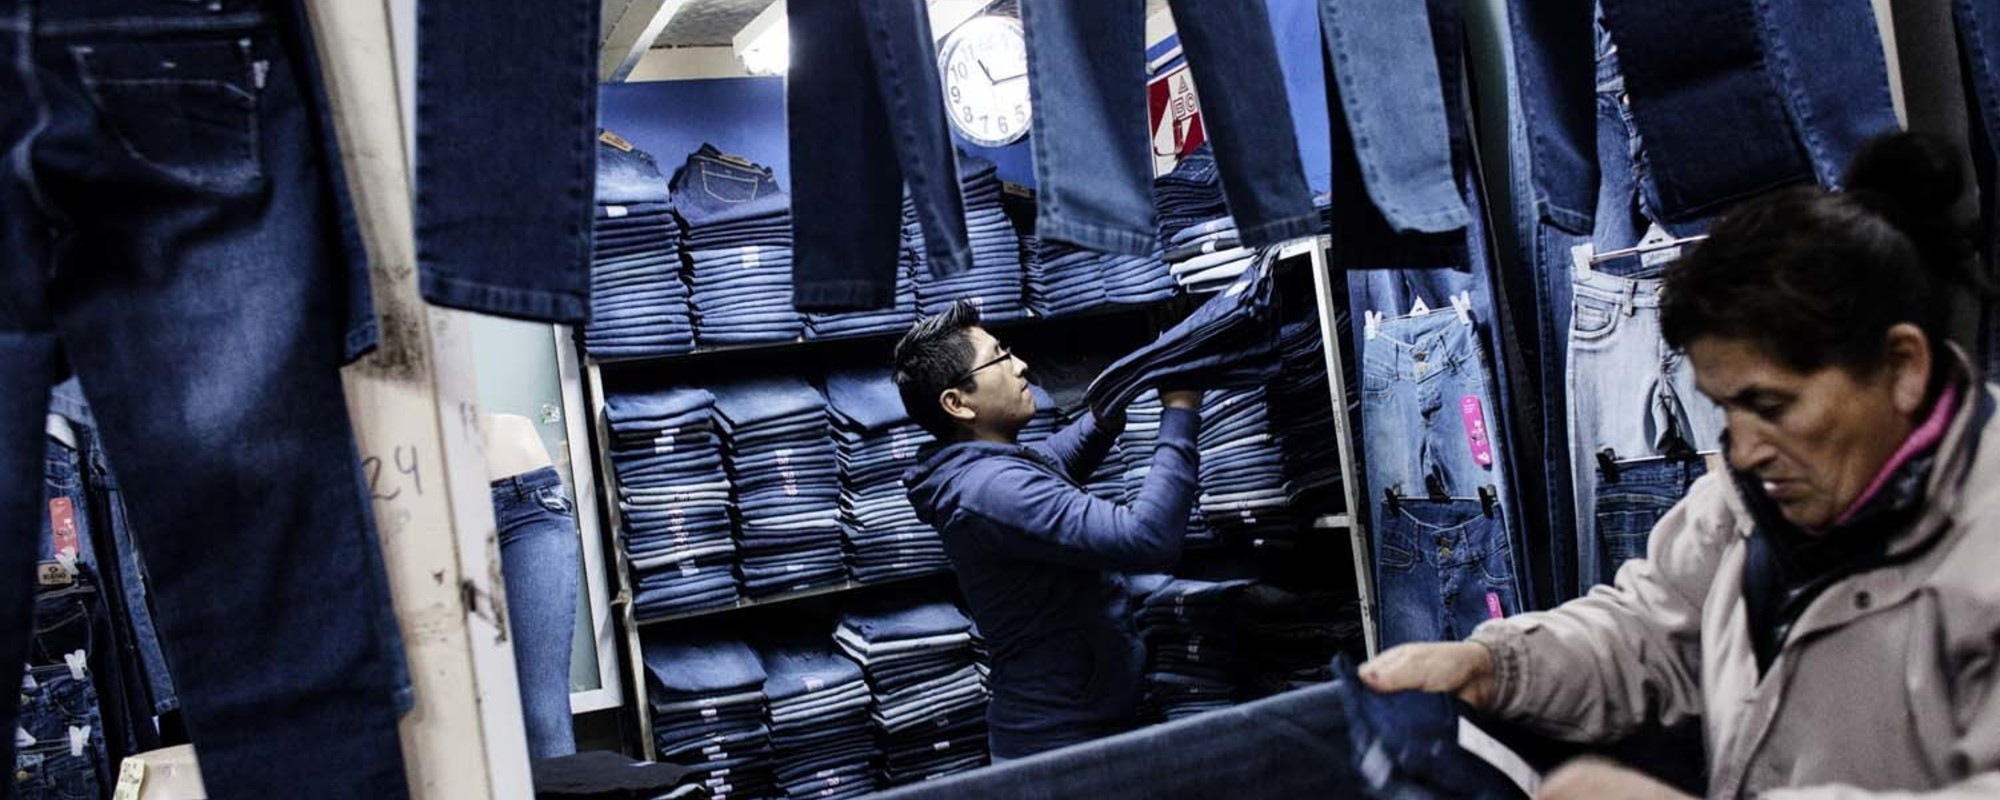 The People and Sweatshops Behind Argentina's Largest Textile Fair